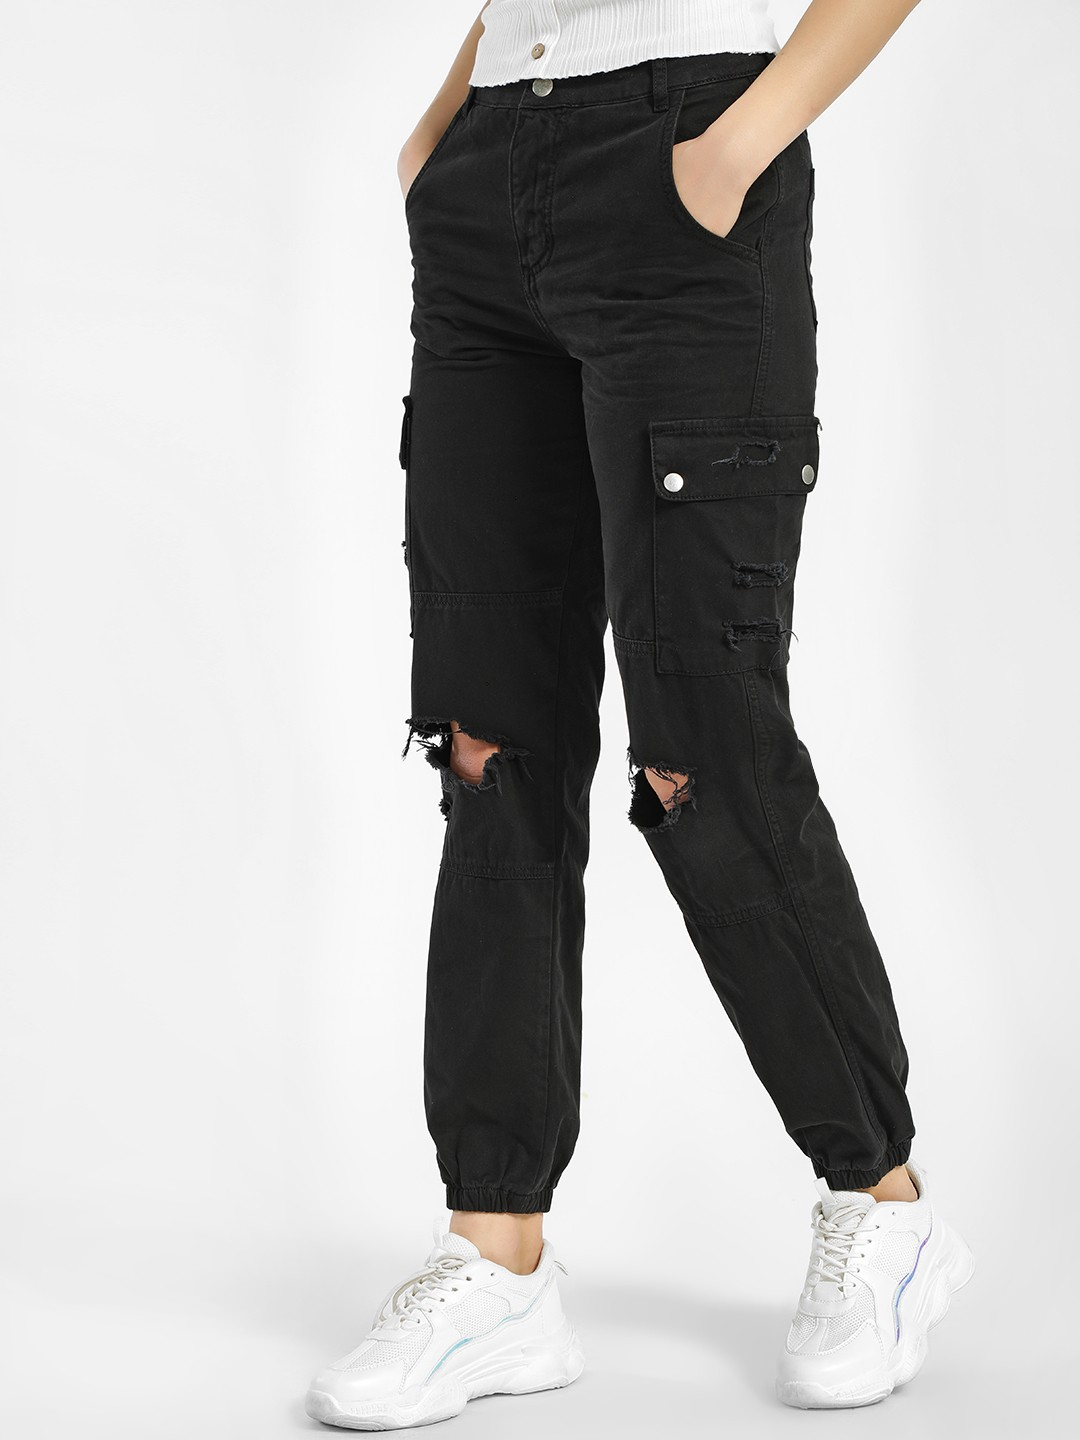 New Look Black Ripped Knee Utility Cuffed Trousers 1